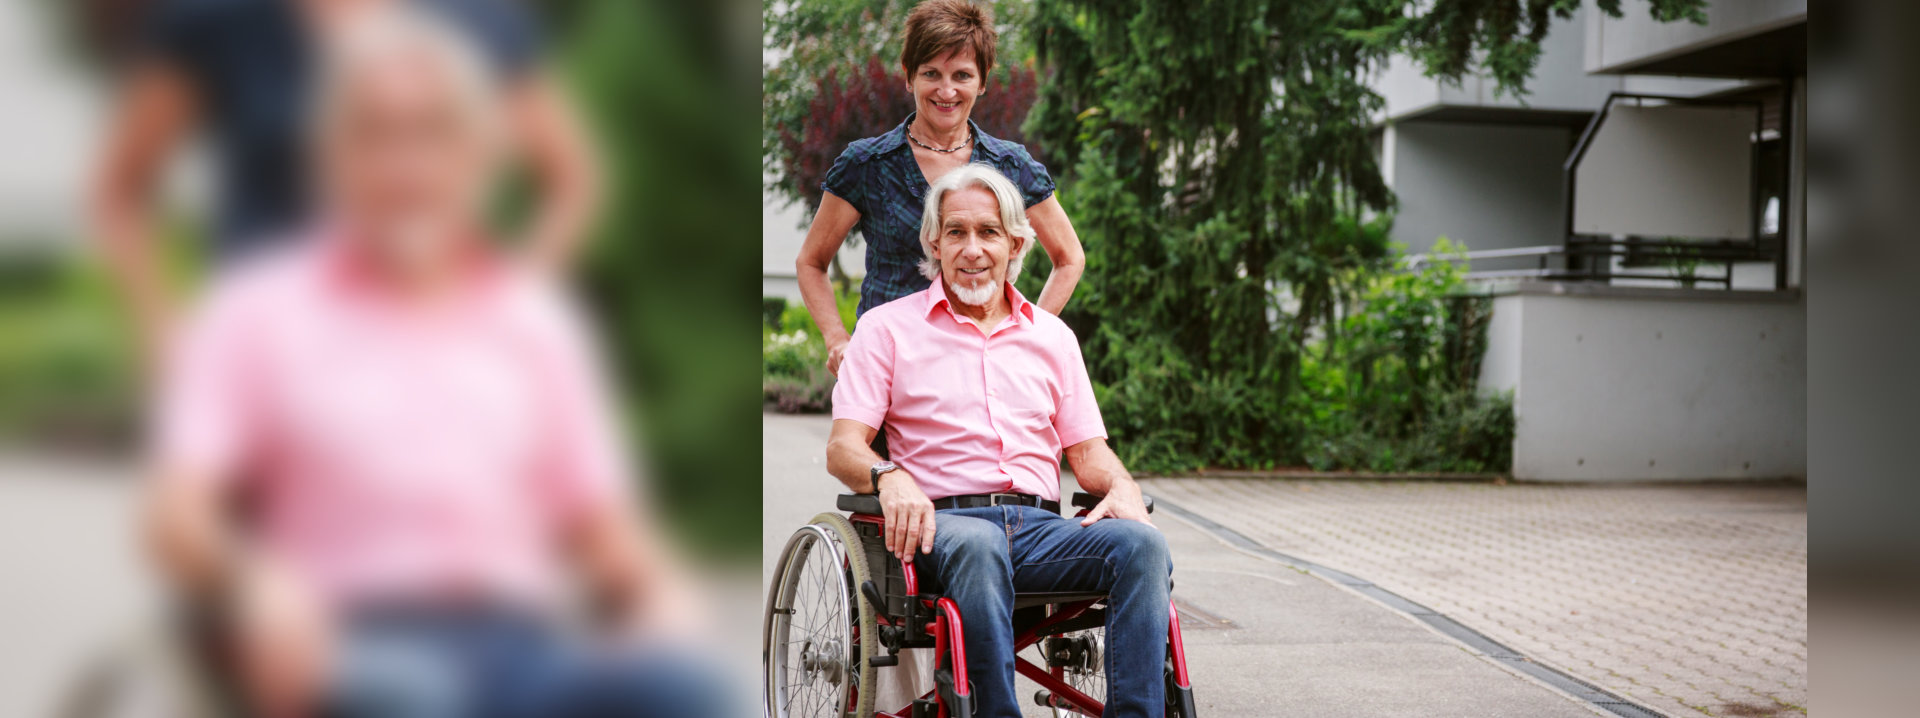 caregiver and senior in a wheelchair